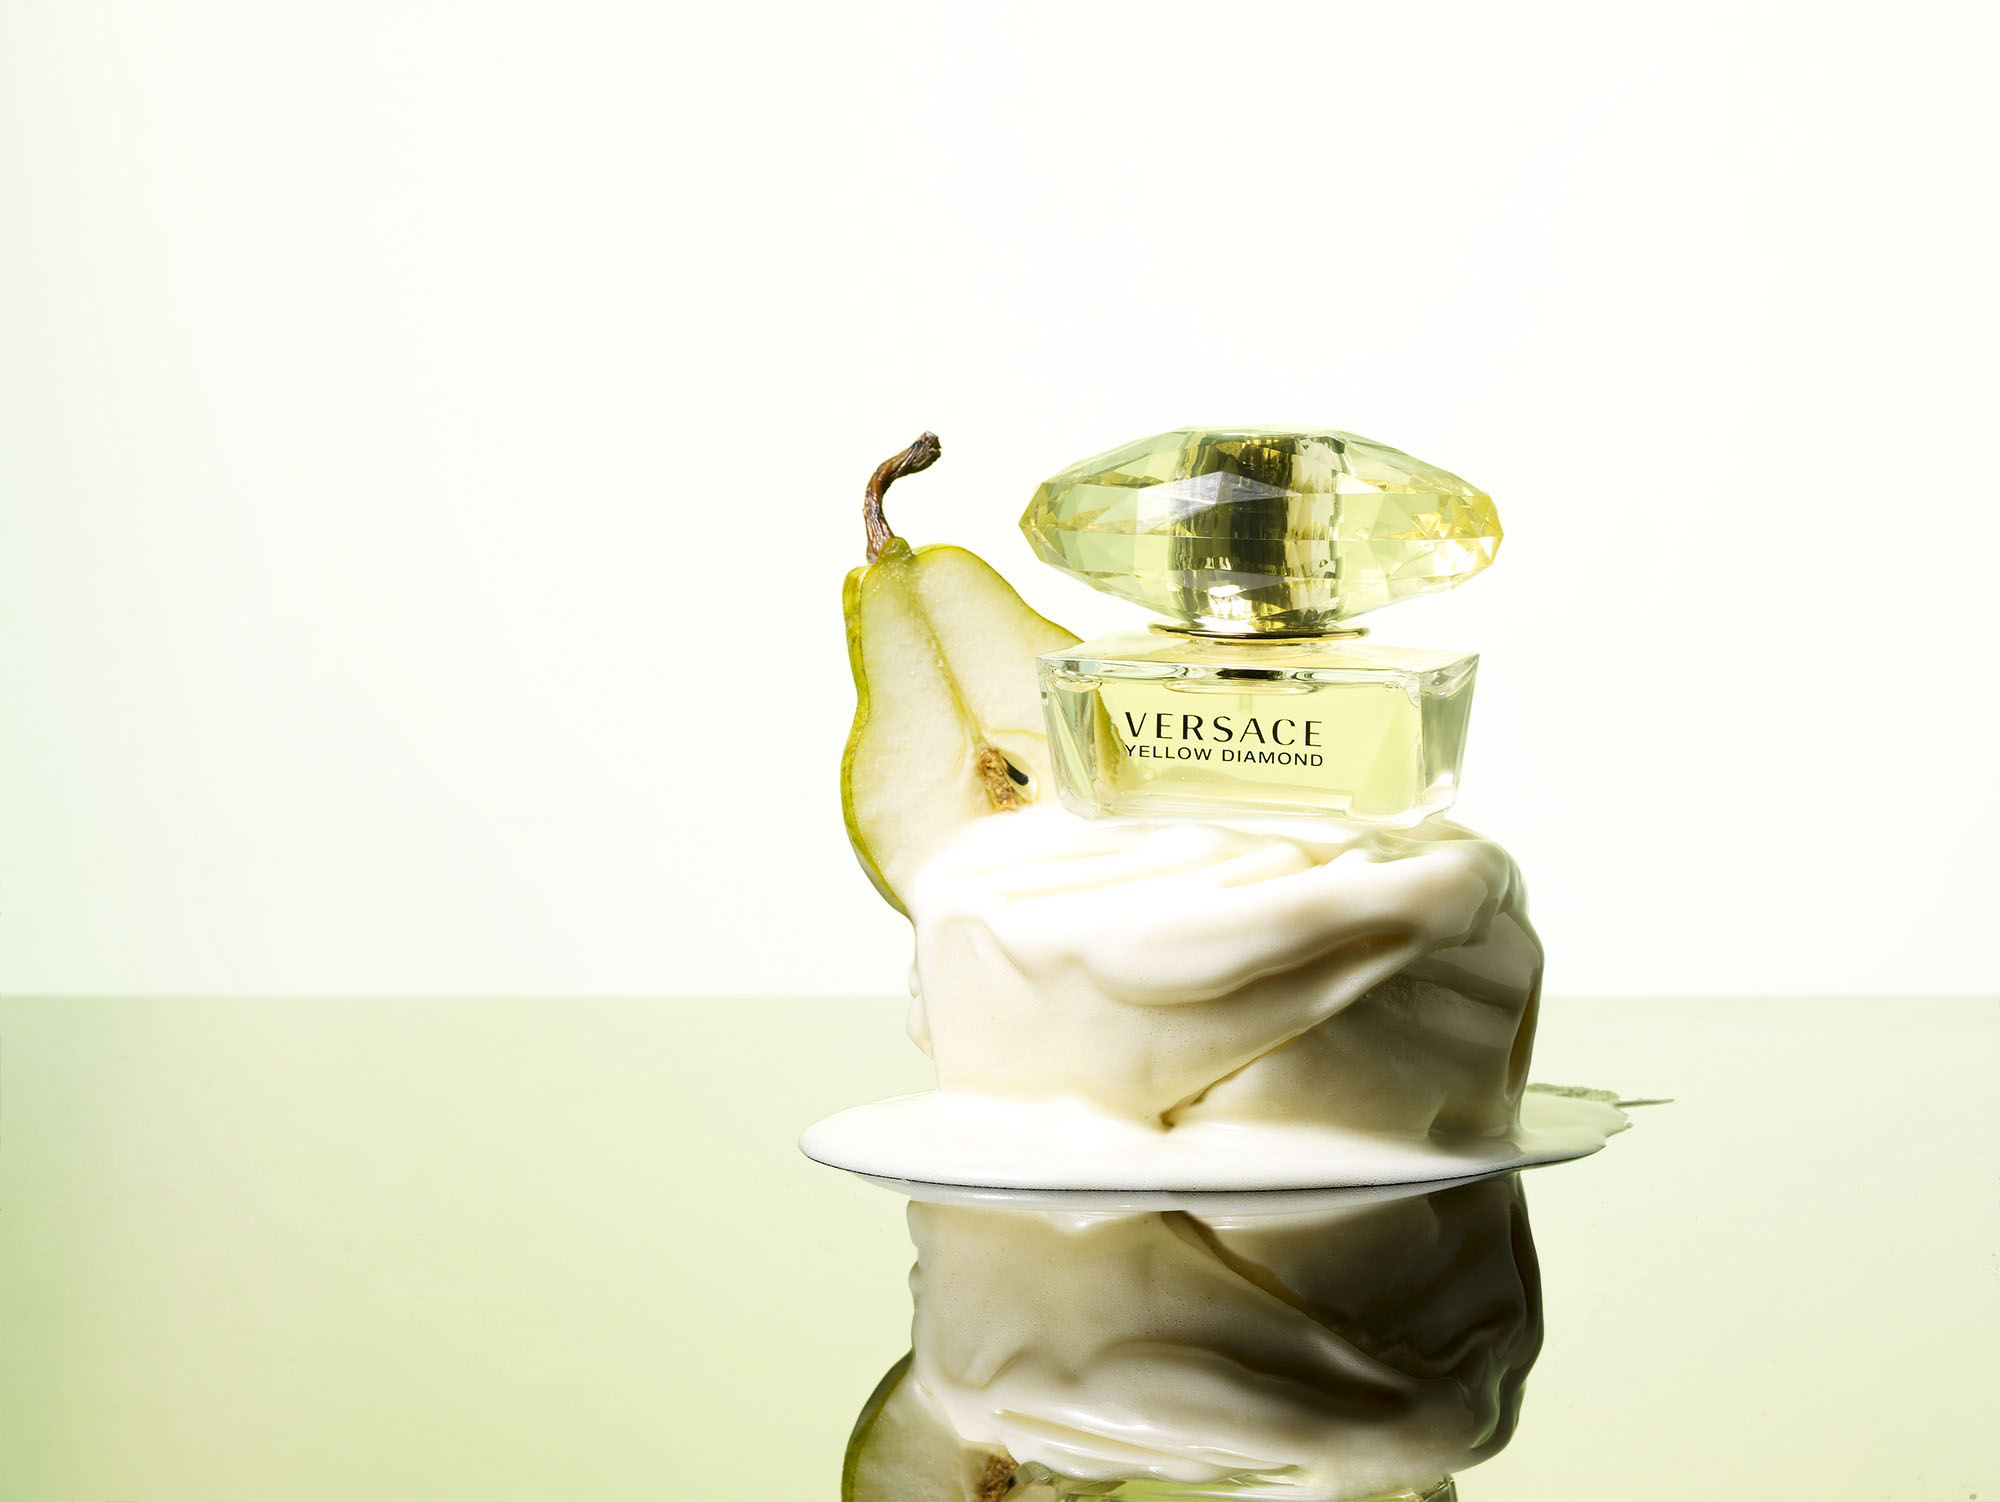 838 Marie Claire perfume-035191 copy.jpg